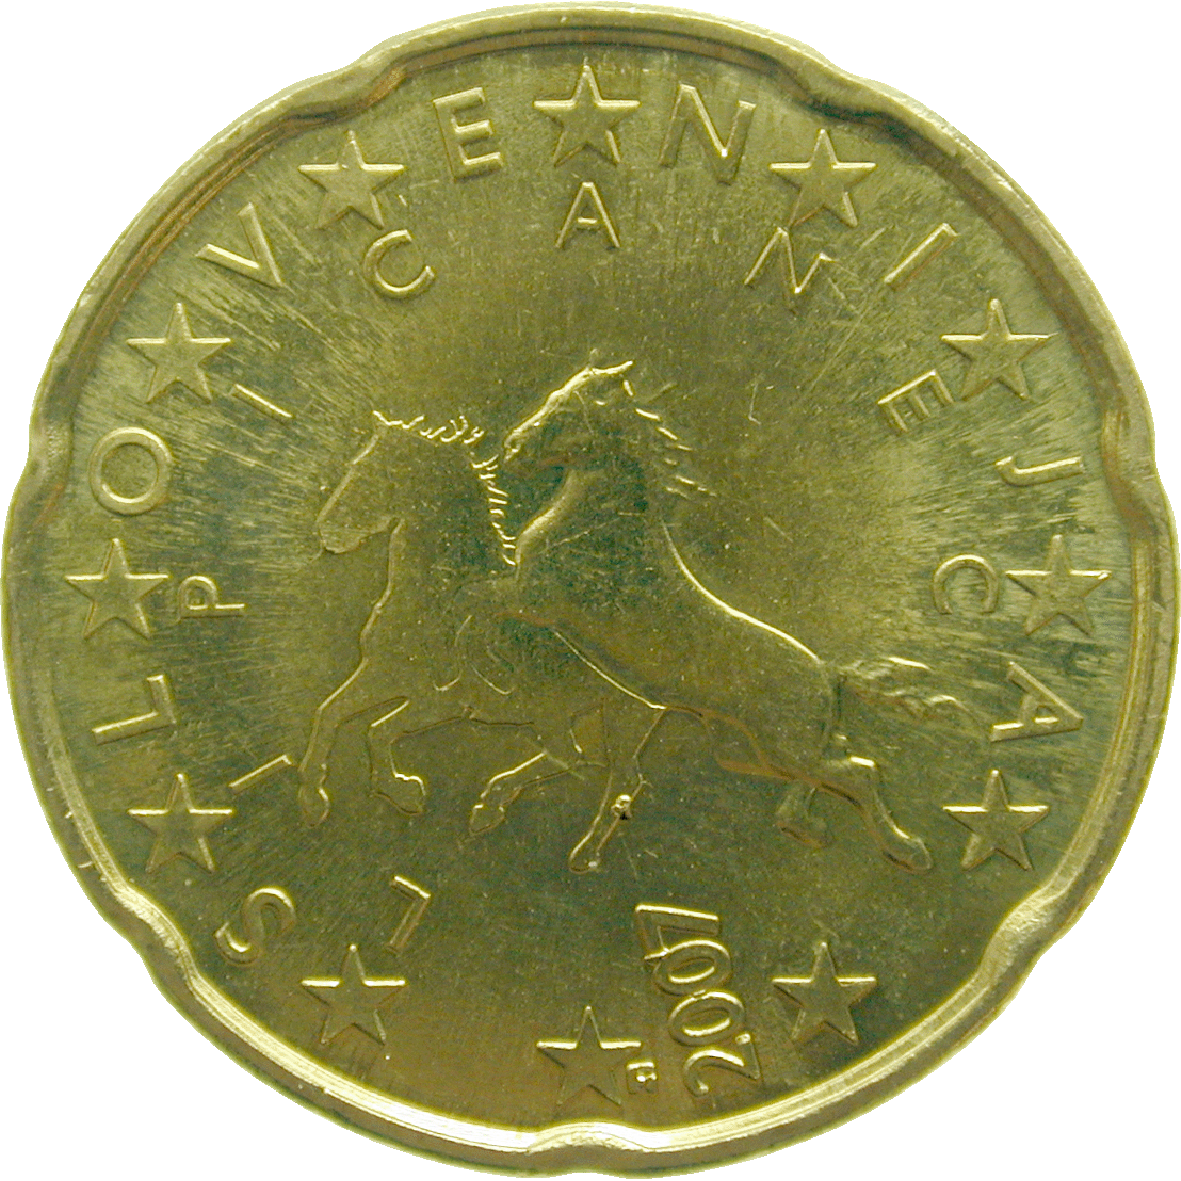 Republik Slowenien, 20 Eurocent 2008 (reverse)